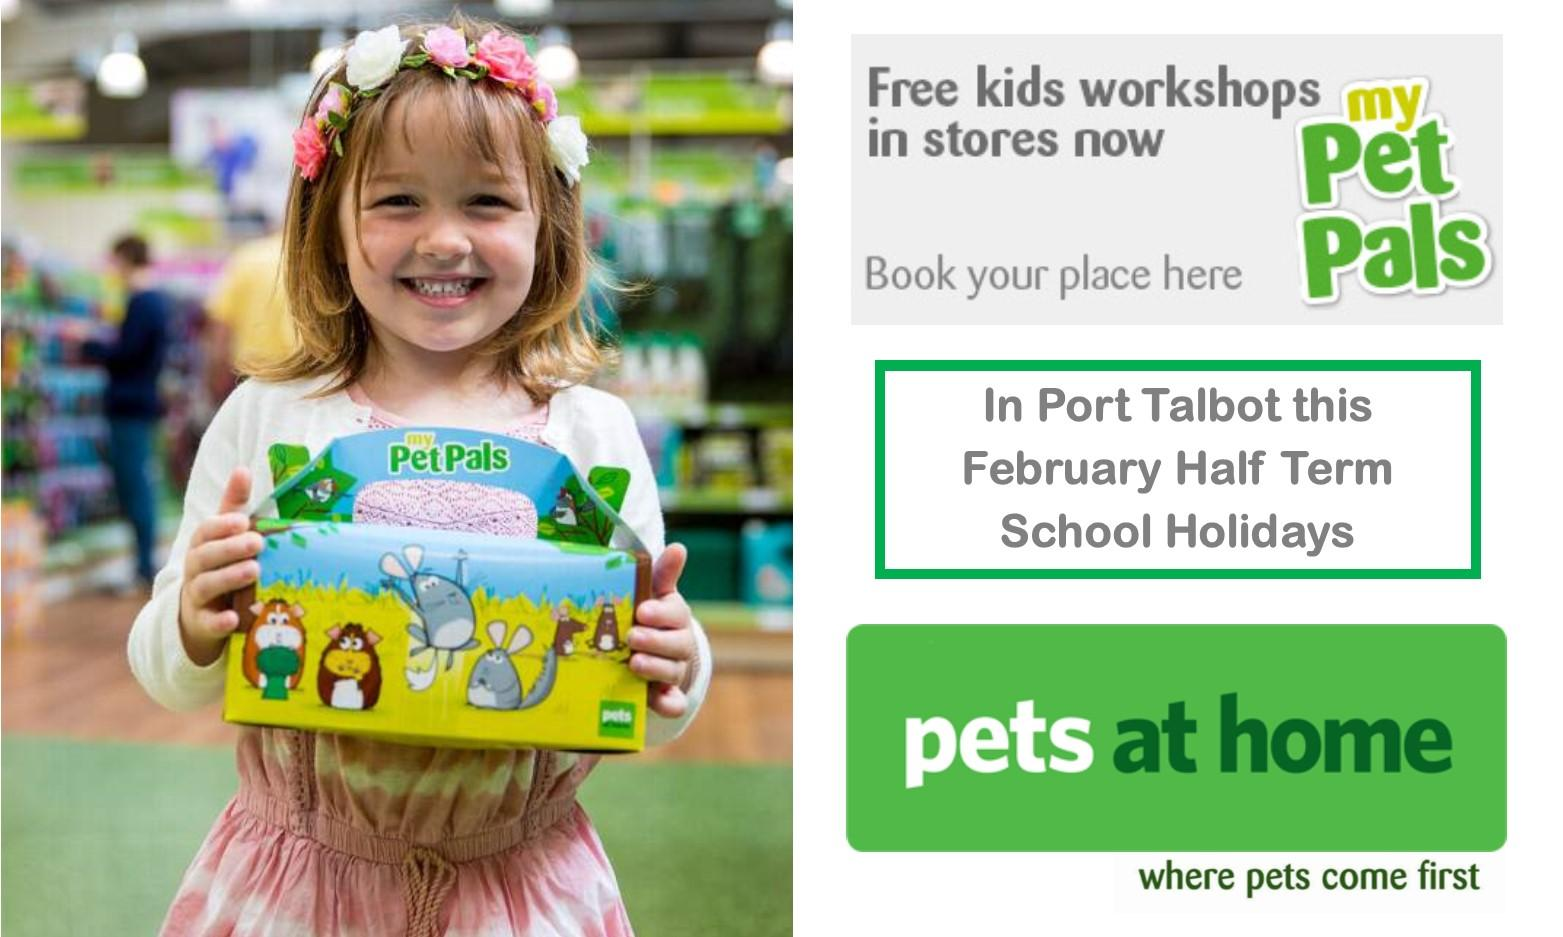 Super Small Furries Pets at Home Workshop in Port Talbot